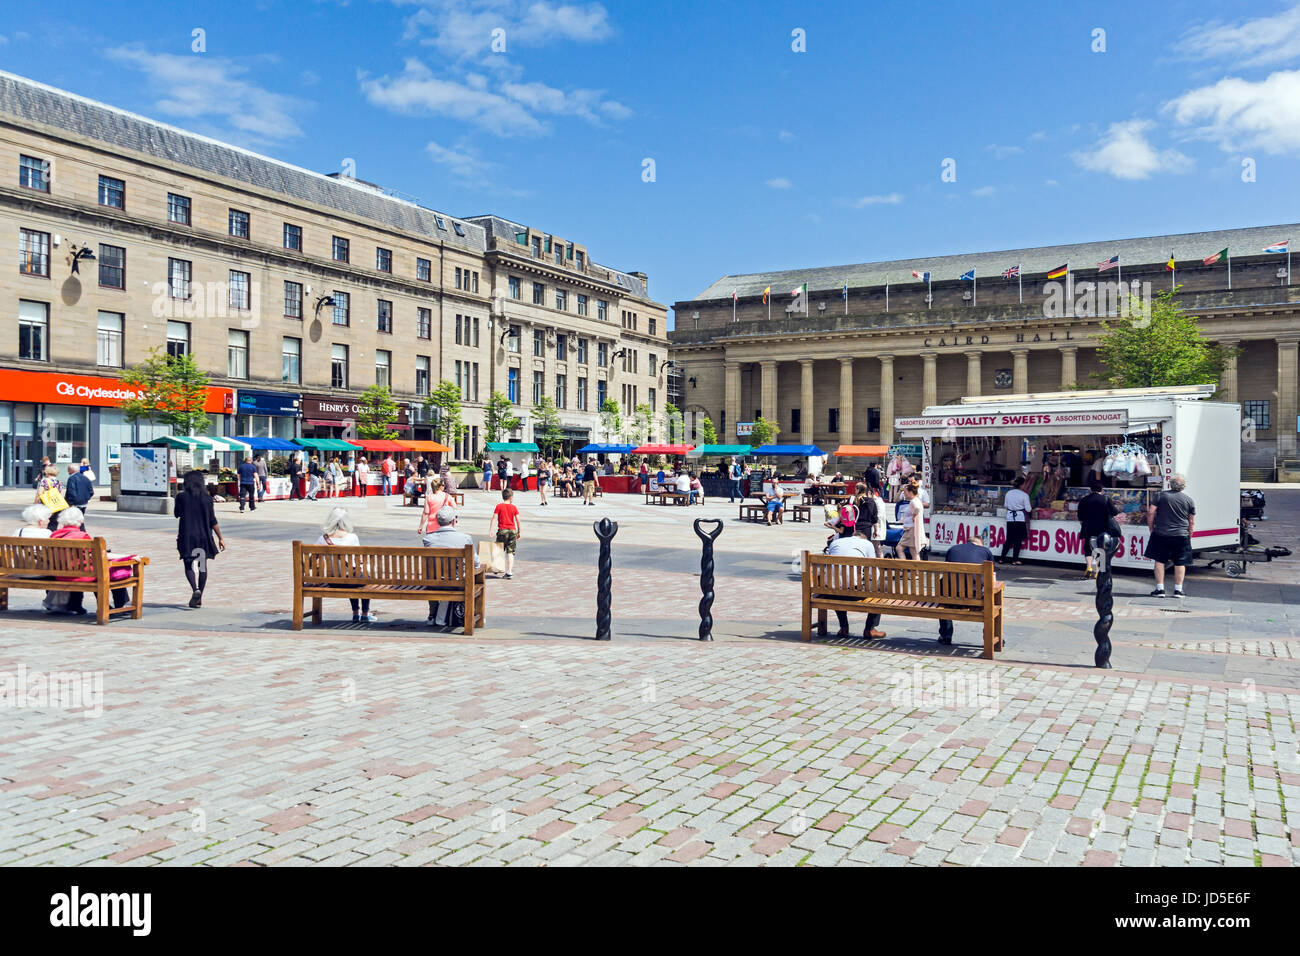 Market at City Square in Dundee Tayside Scotland UK - Stock Image